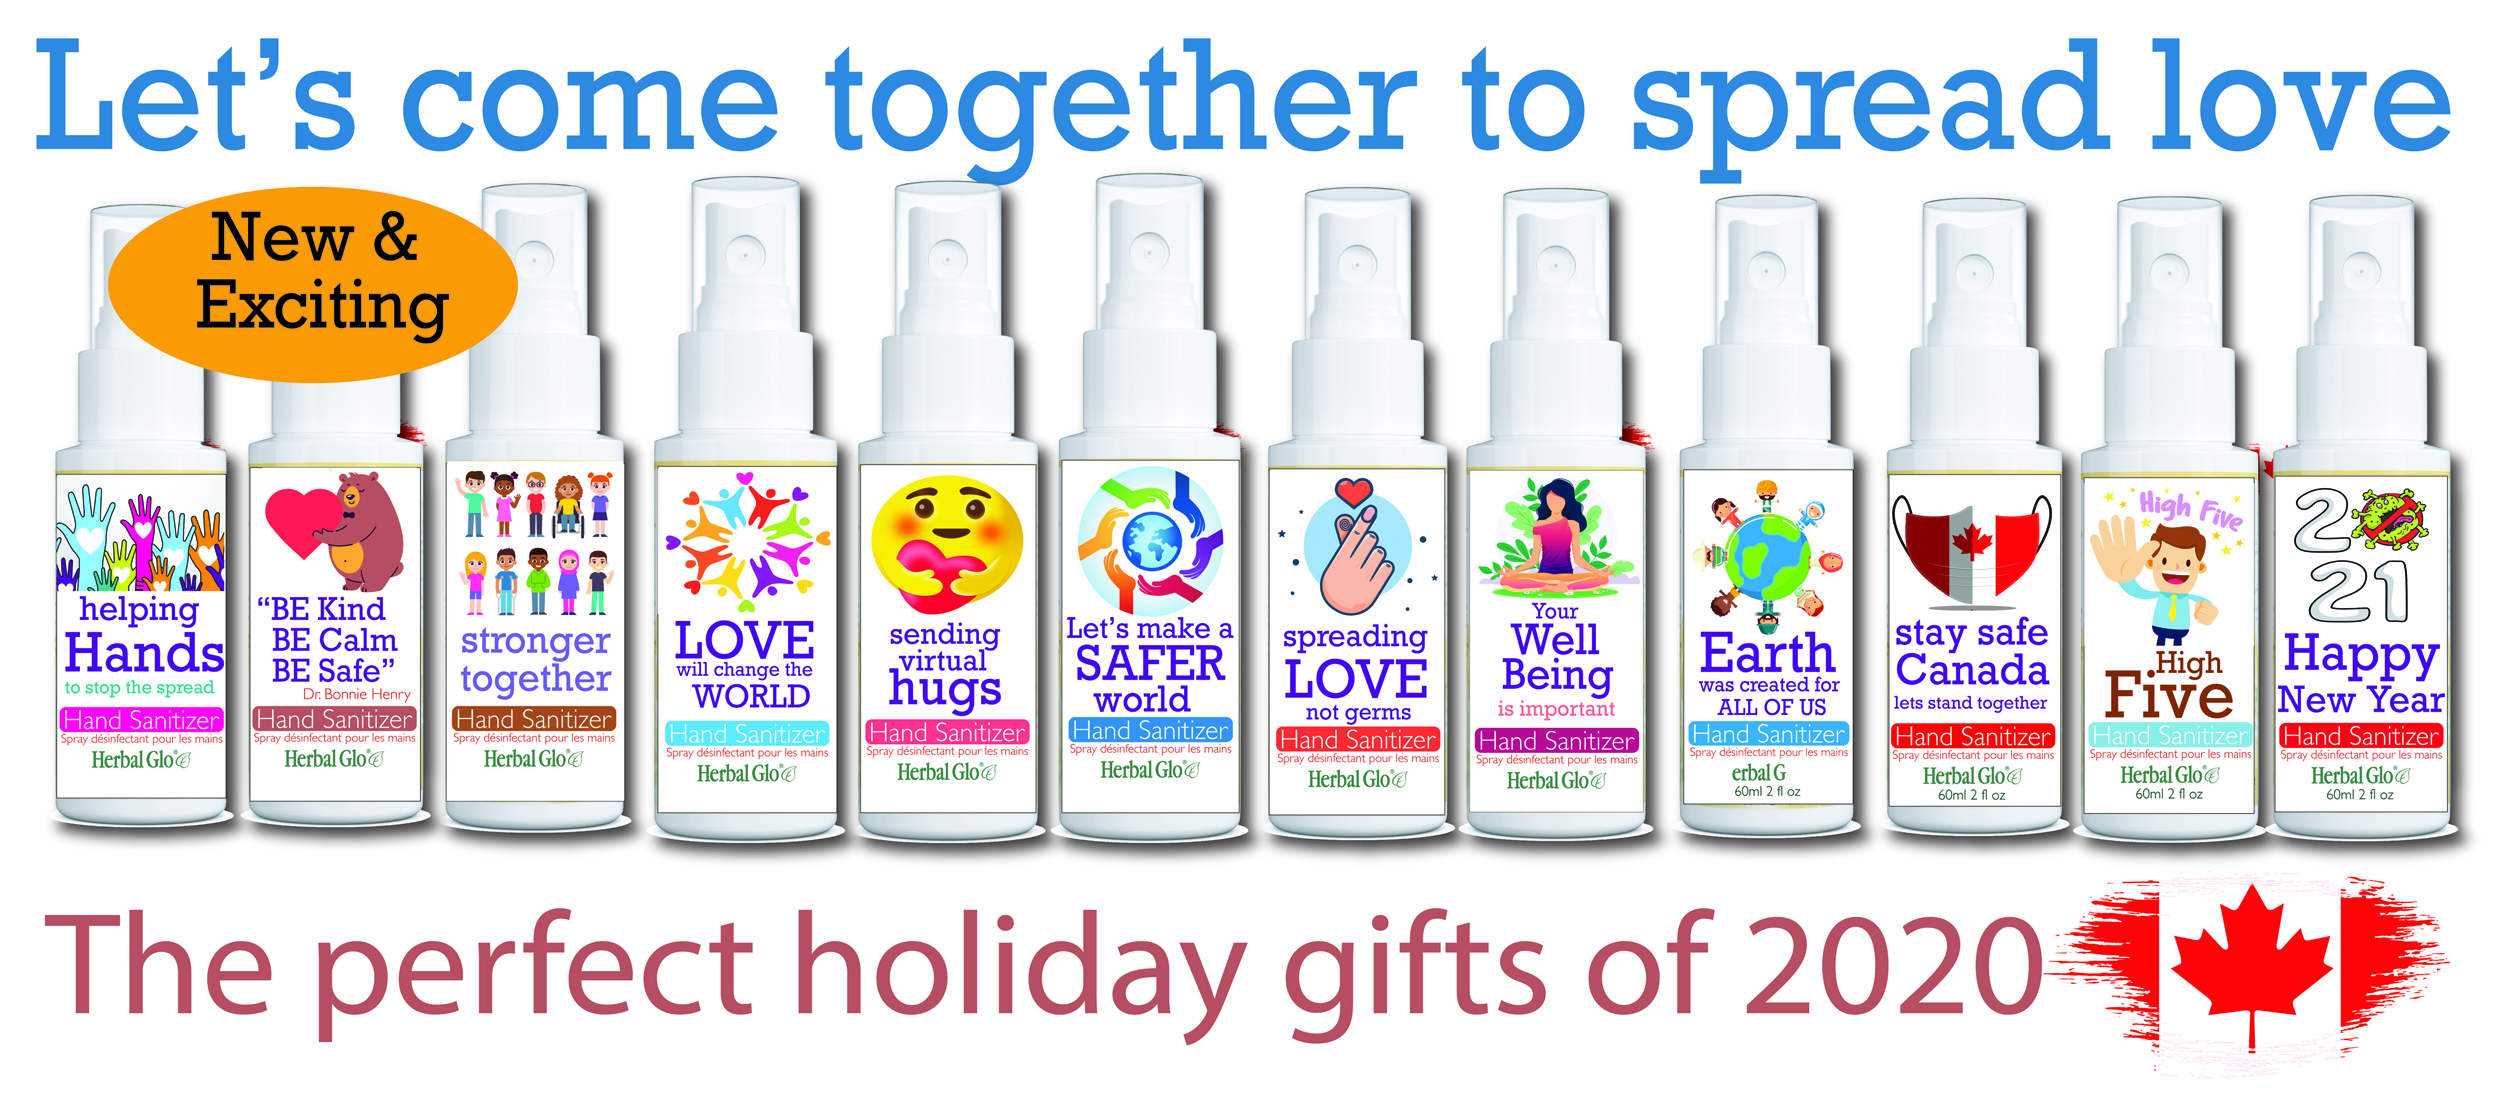 image shows the entire product line for catchy covid hand sanitizers